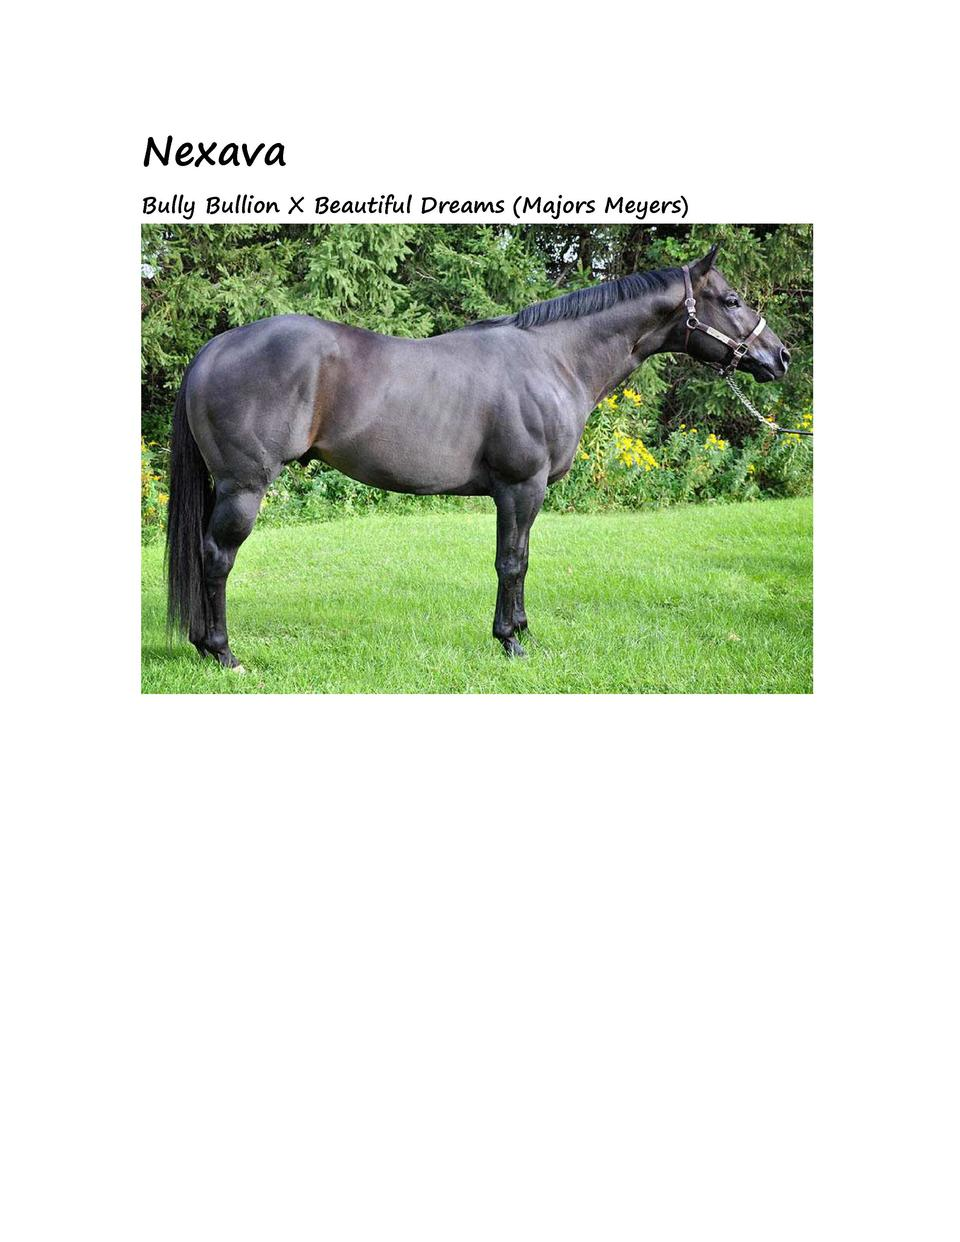 Nexava Bully Bullion X Beautiful Dreams  Majors Meyers